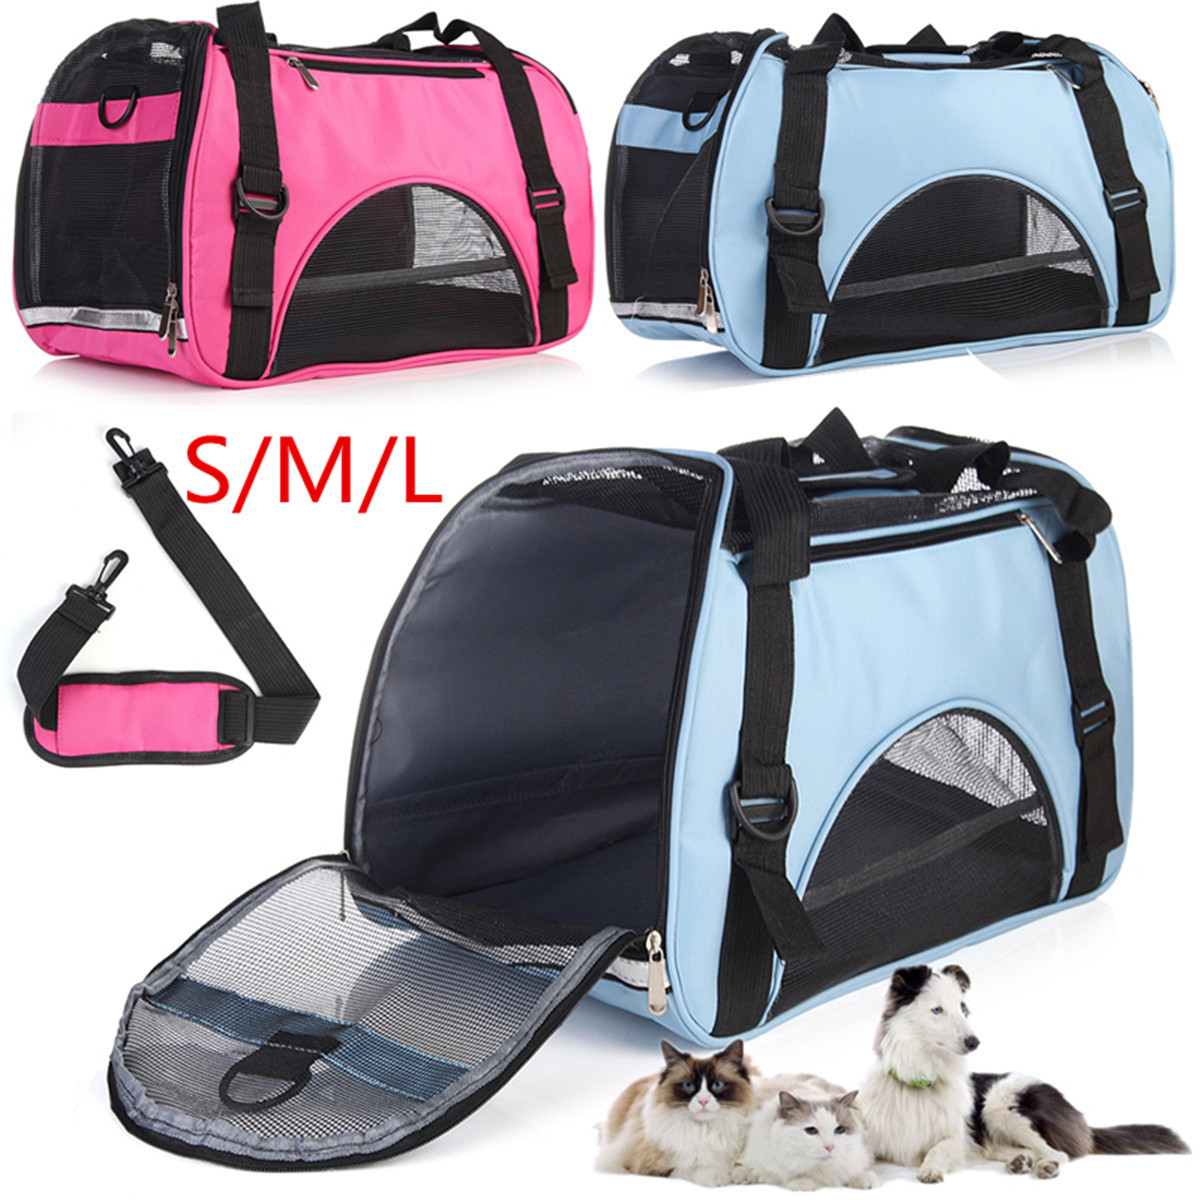 Pet Carrier Pet Travel Portable Bag Carrier Soft Side Bags for Dogs and Cats